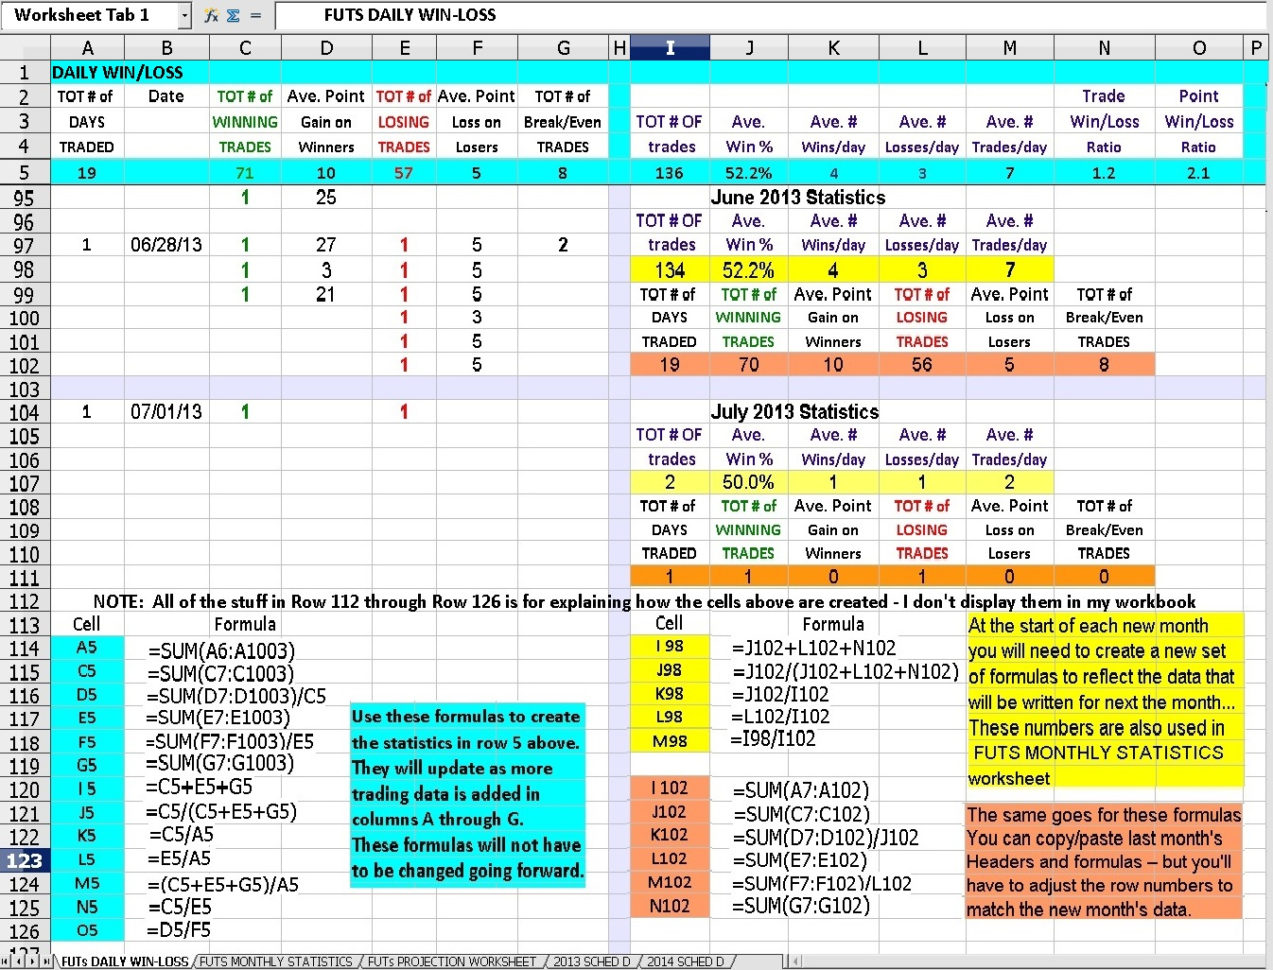 Futures Trading Journal Spreadsheet Intended For Sheet Futuresading Spreadsheet As Google Spreadsheets Rocket League